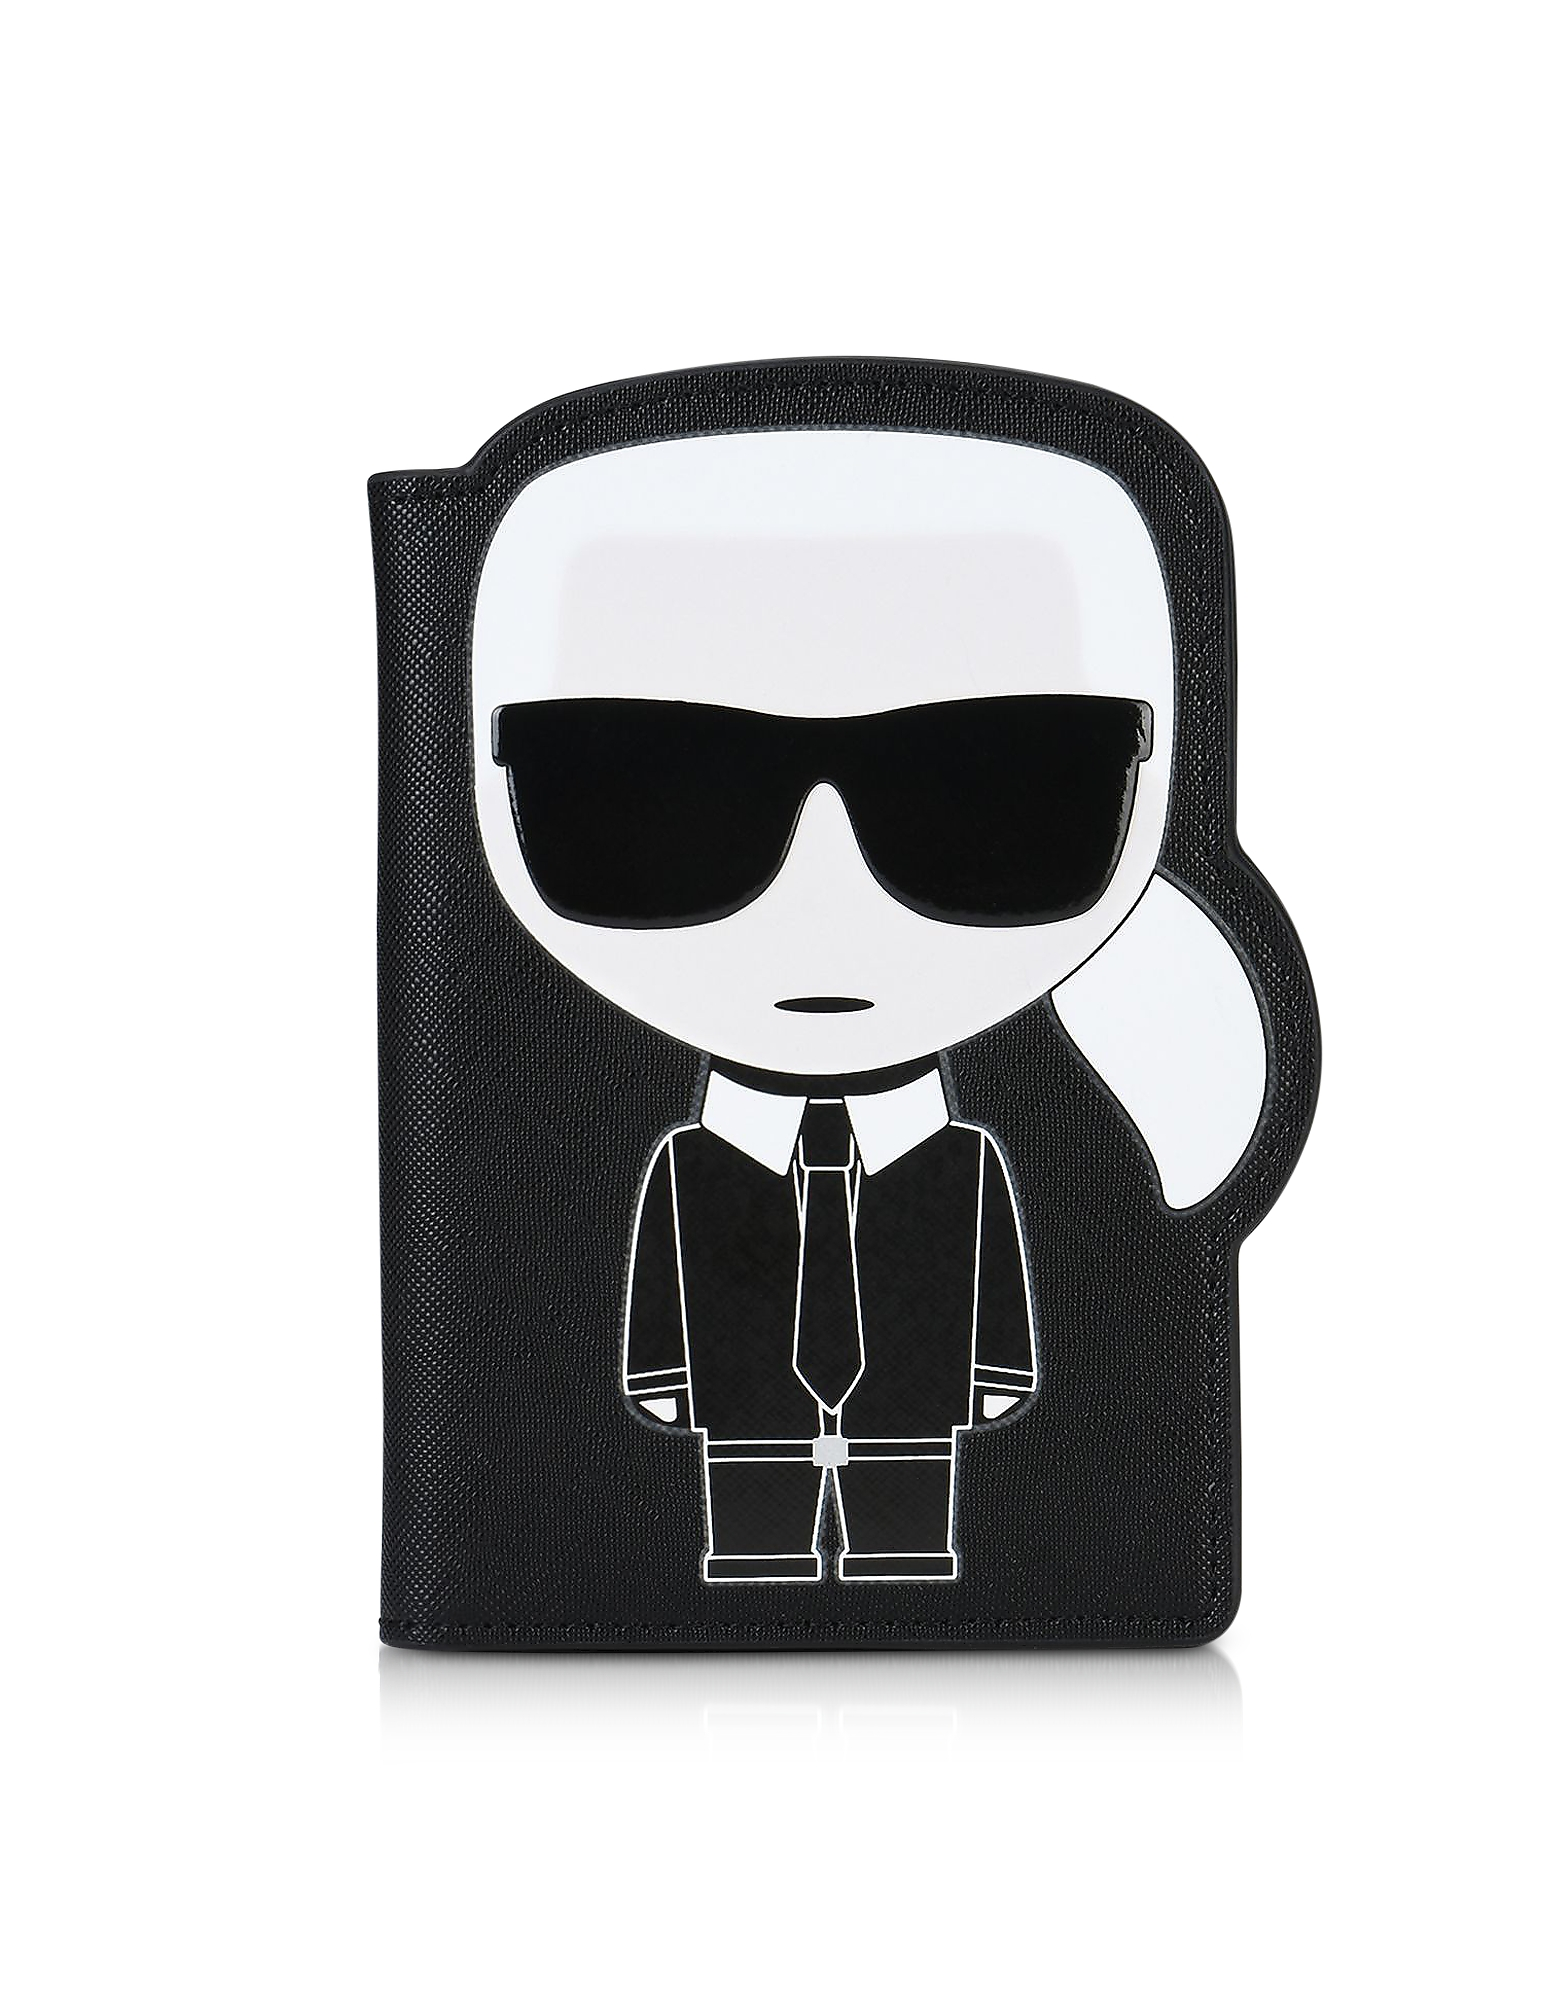 Karl Lagerfeld Handbags, K/Ikonik Passport Holder